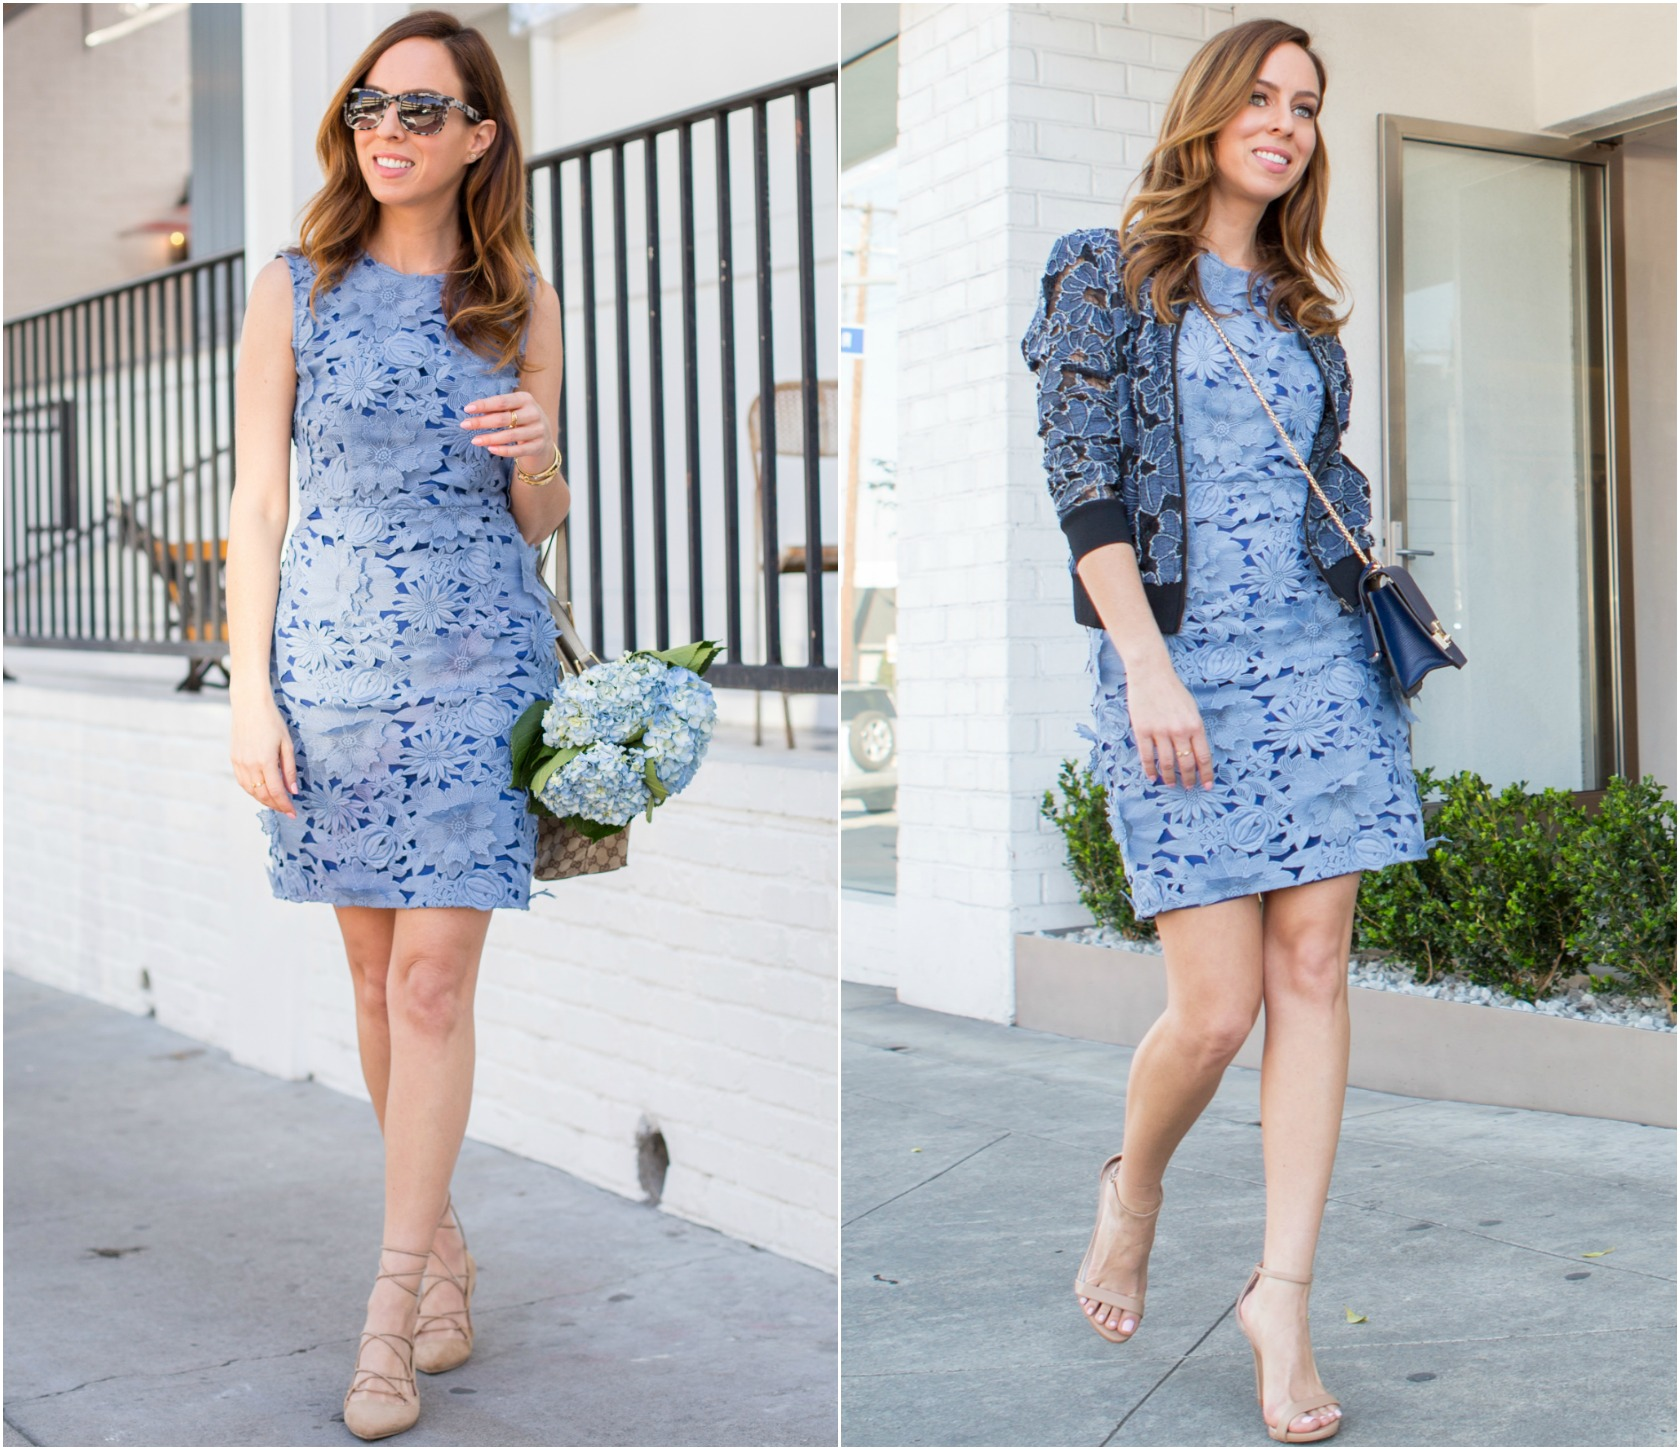 How To Wear Blue Lace Dress